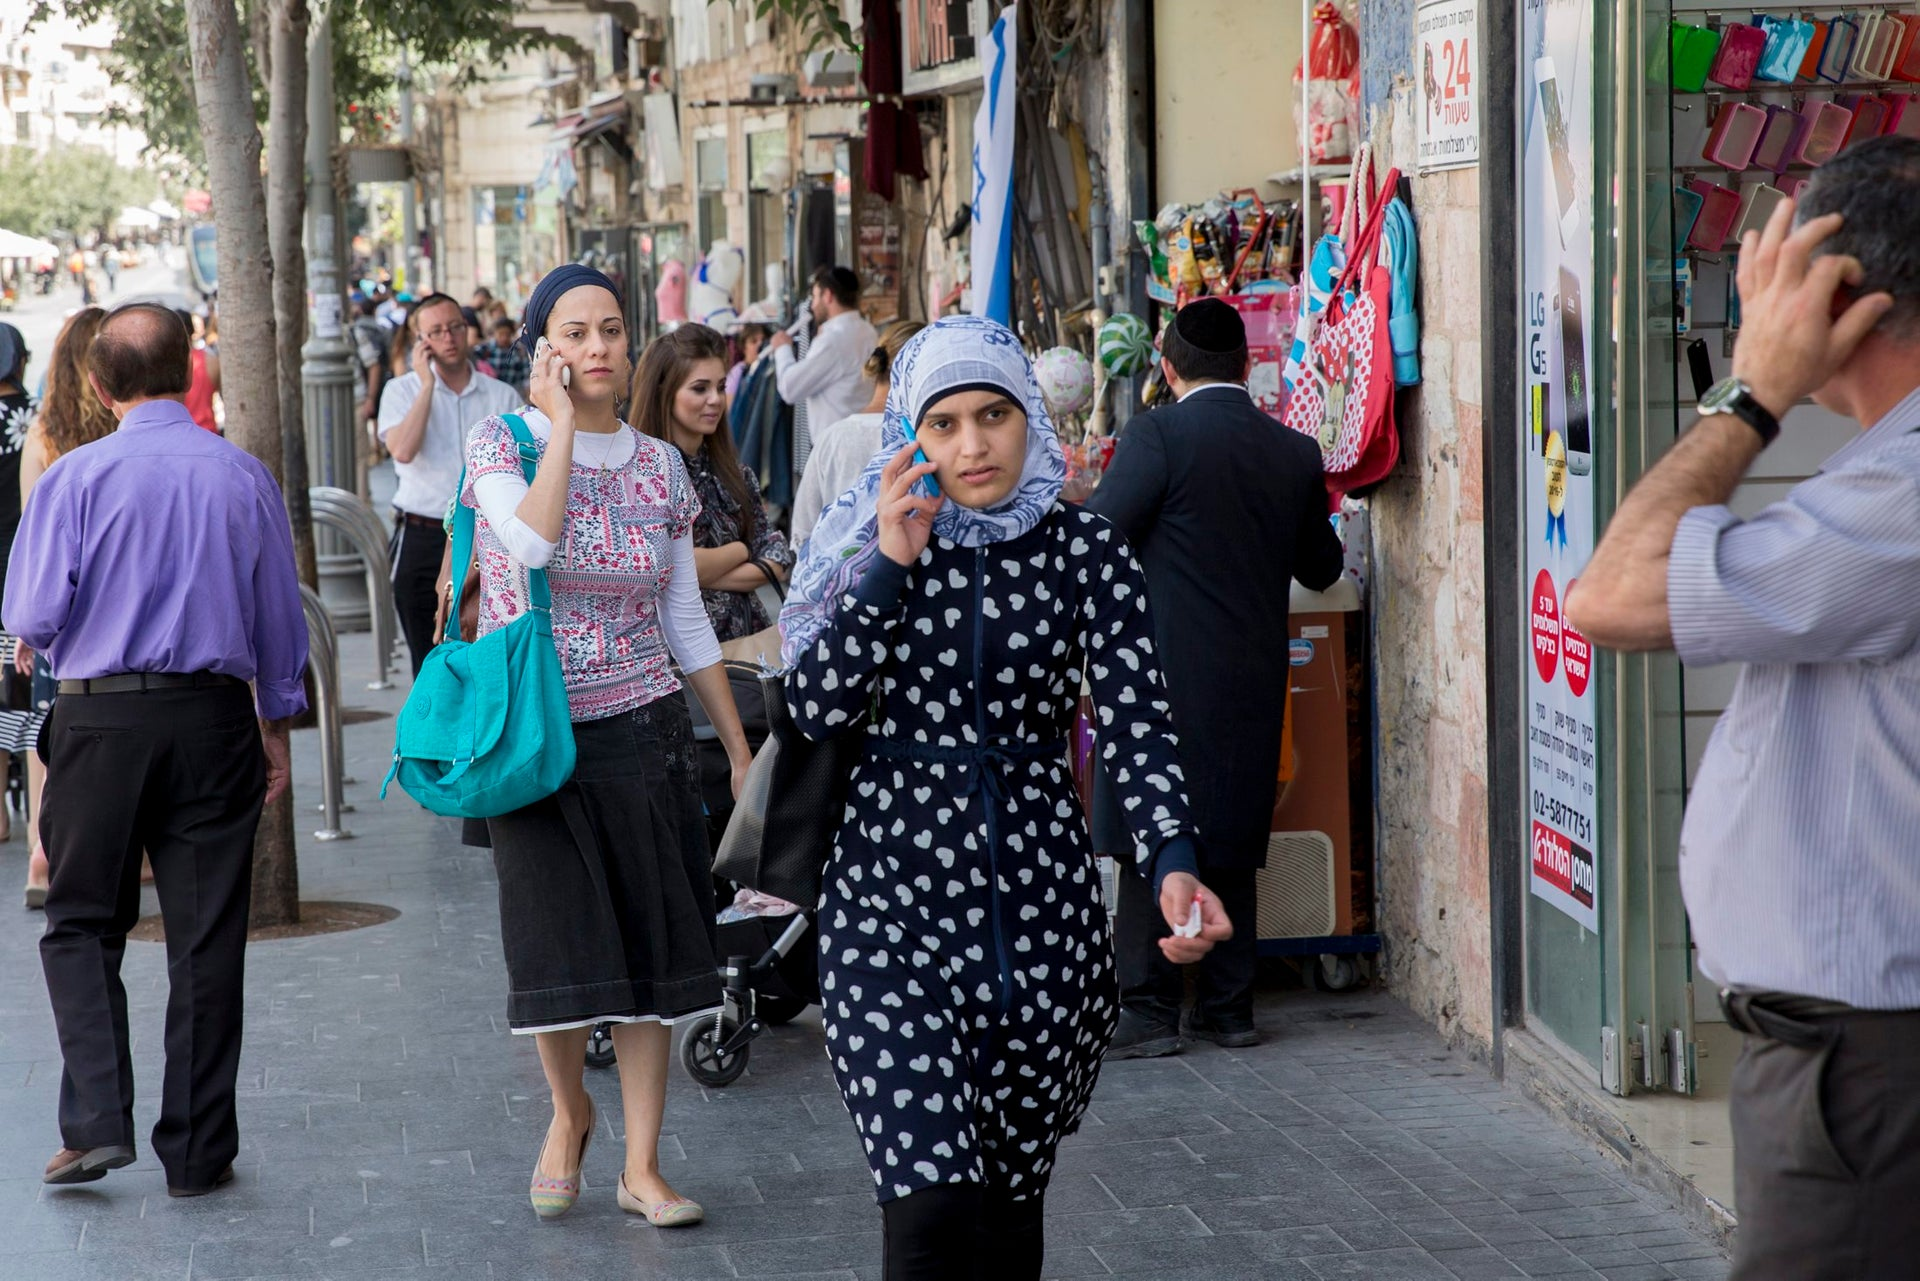 A Jewish and Arab woman talking on cellphones in Jerusalem, June 2016. Some 324,000 of the city's 865,000 residents are Arab.